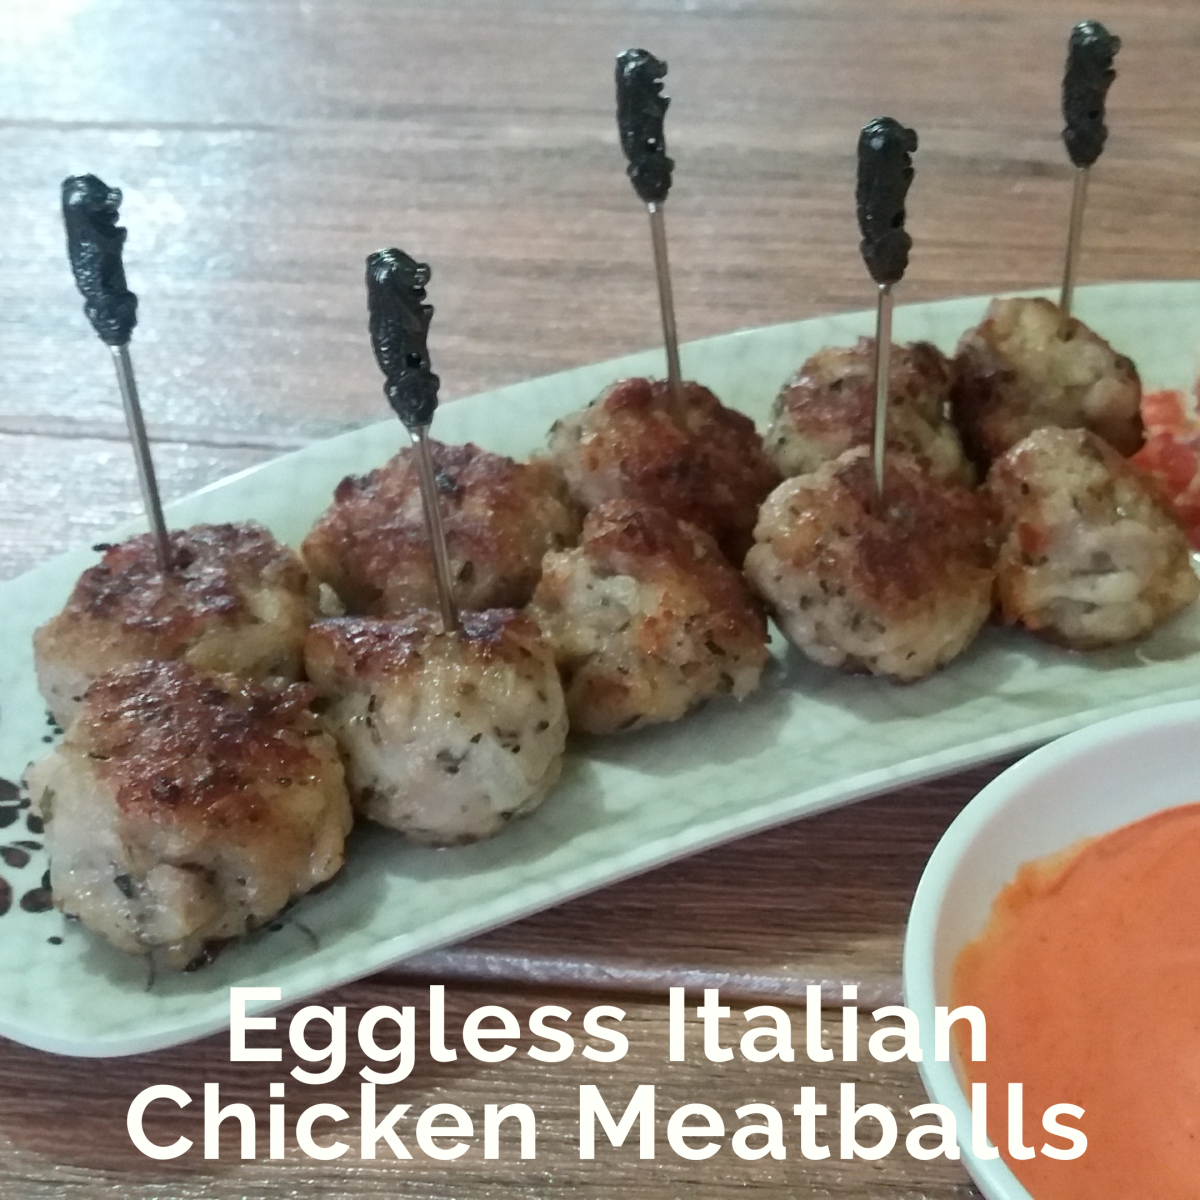 Learn how to prepare Italian chicken meatballs with no eggs.